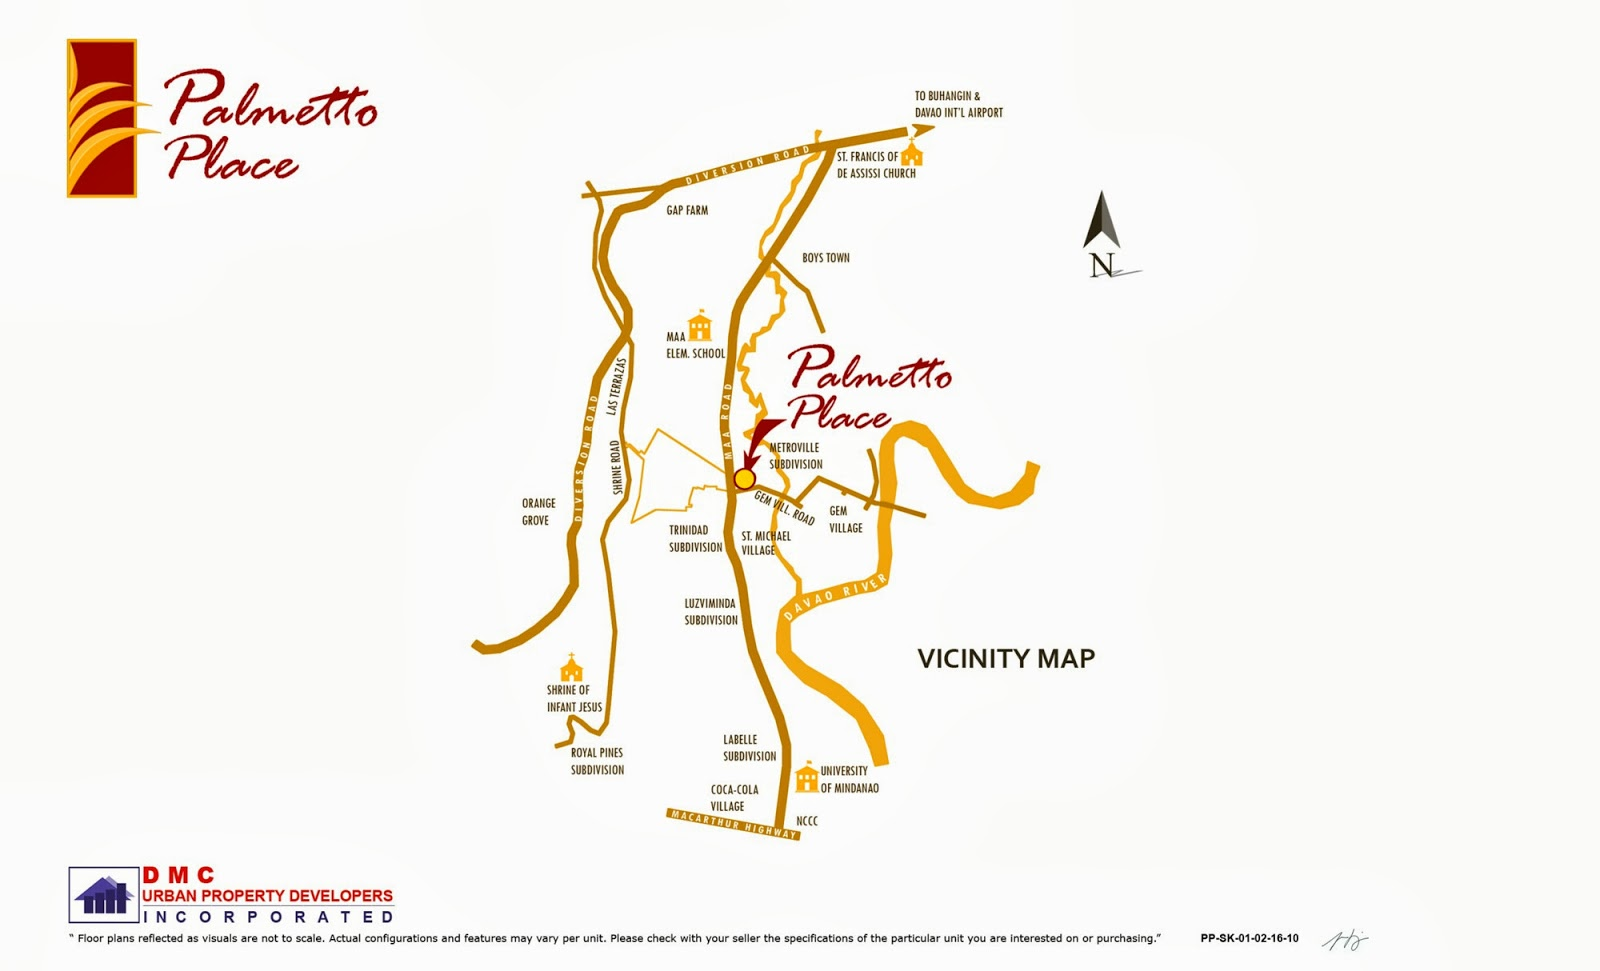 Palmetto Place Condominium, Ma-a, Davao City Vicinity Map